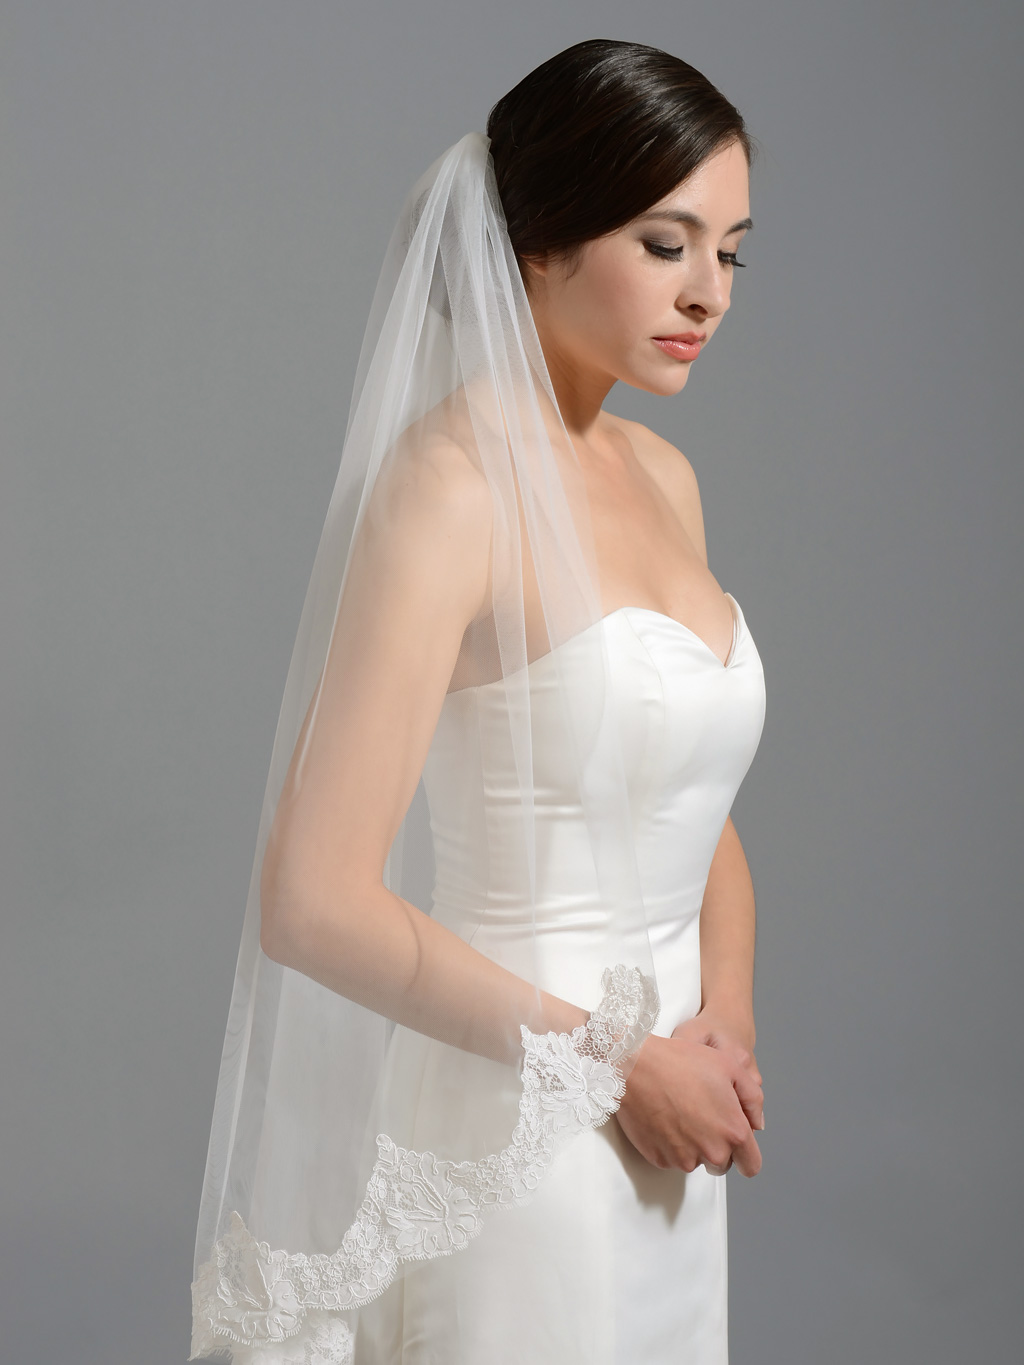 Ivory elbow alencon lace wedding veil V wedding veils